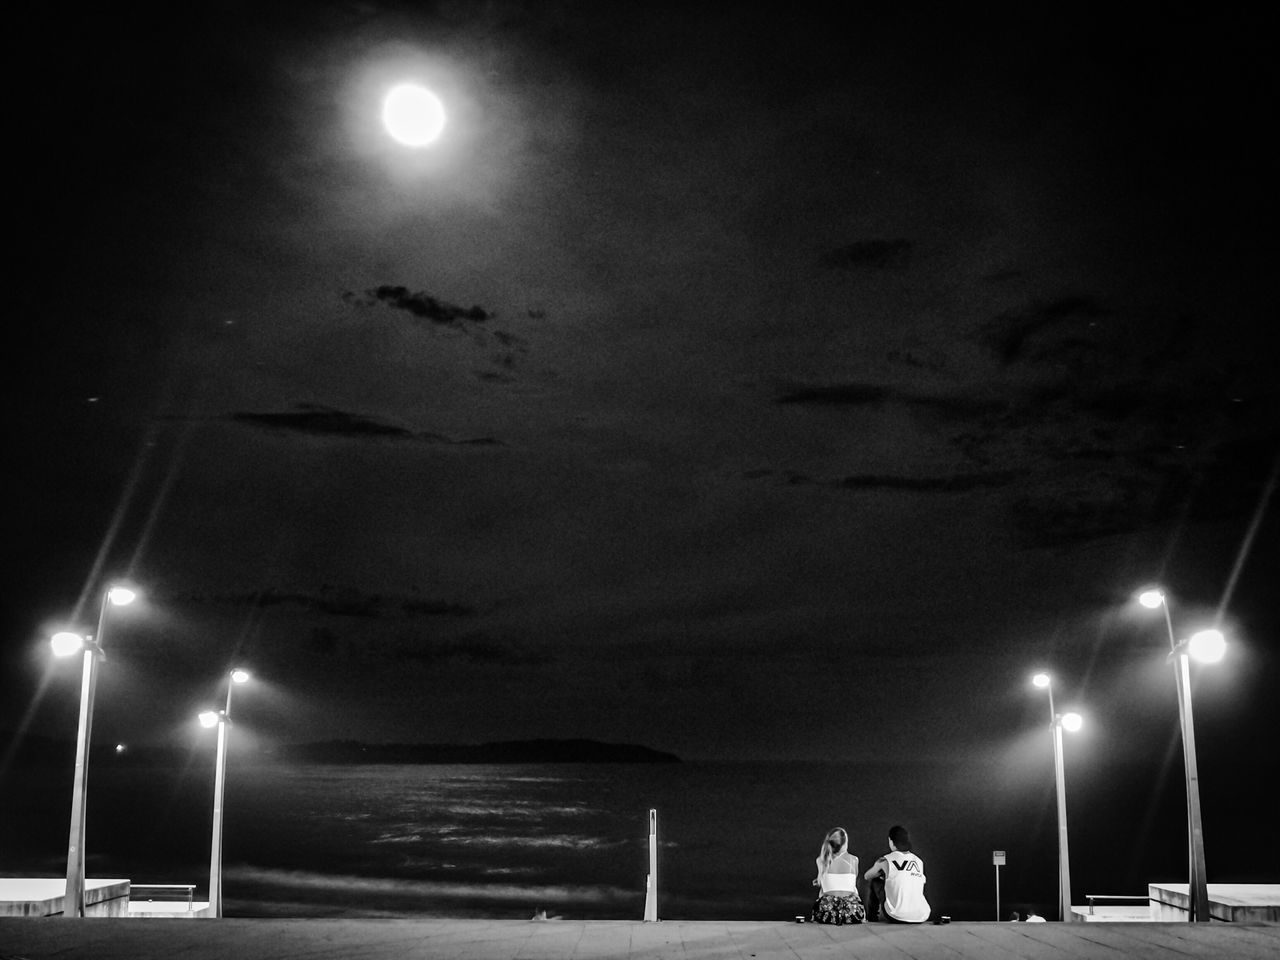 night, illuminated, sky, real people, sea, lighting equipment, men, leisure activity, street light, water, outdoors, moon, togetherness, beach, lifestyles, cloud - sky, women, nature, scenics, horizon over water, standing, nautical vessel, beauty in nature, people